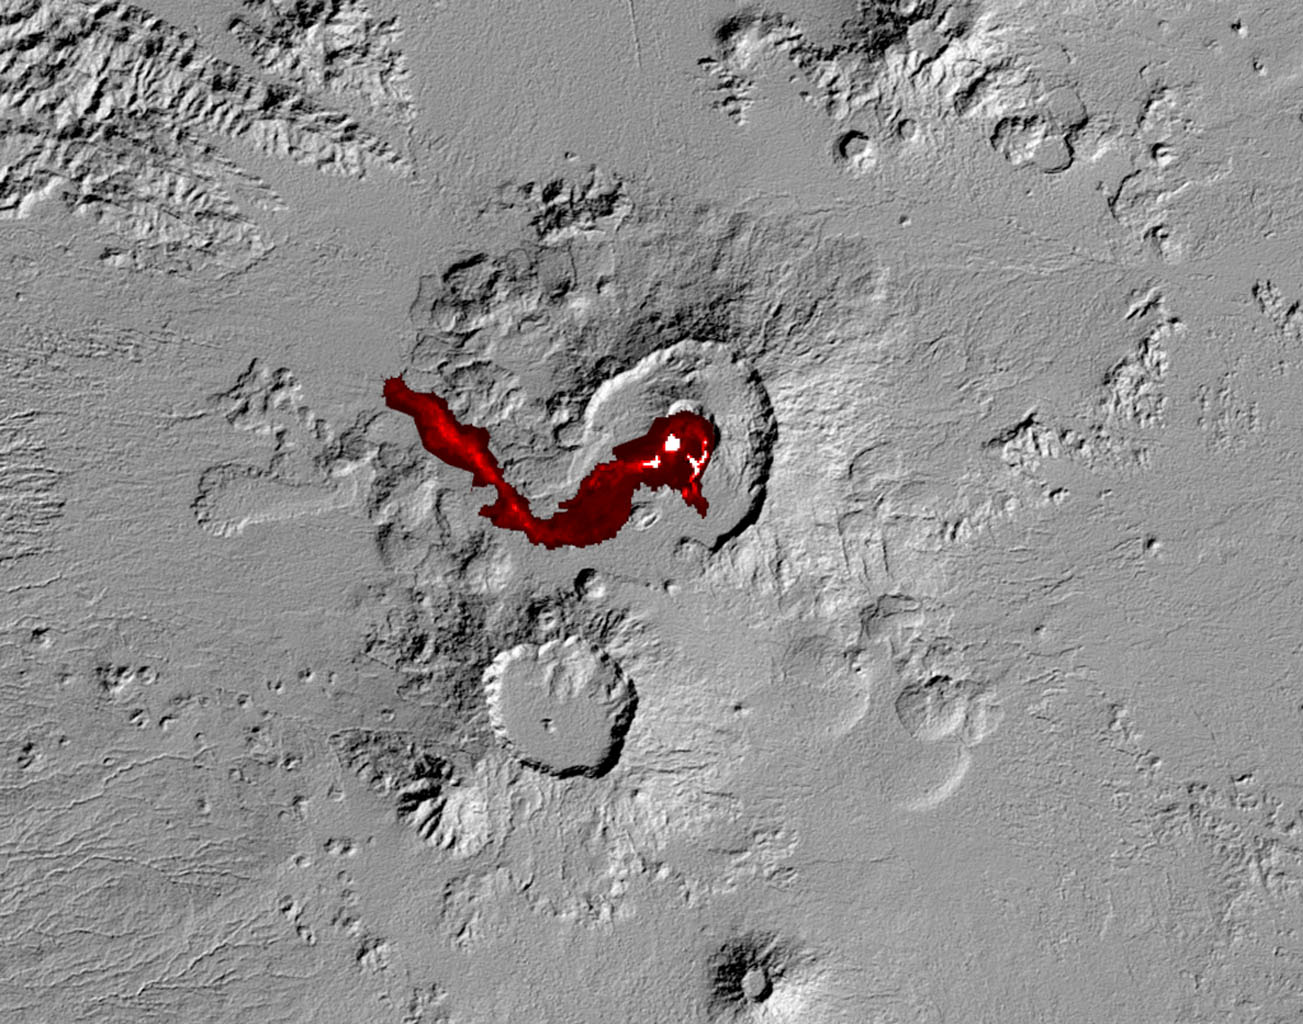 Nabro volcano in the African nation of Eritrea began erupting June 12, 2011, the first-ever recorded eruption of this stratovolcano. This image was acquired by NASA's Terra spacecraft on July 5, 2011.